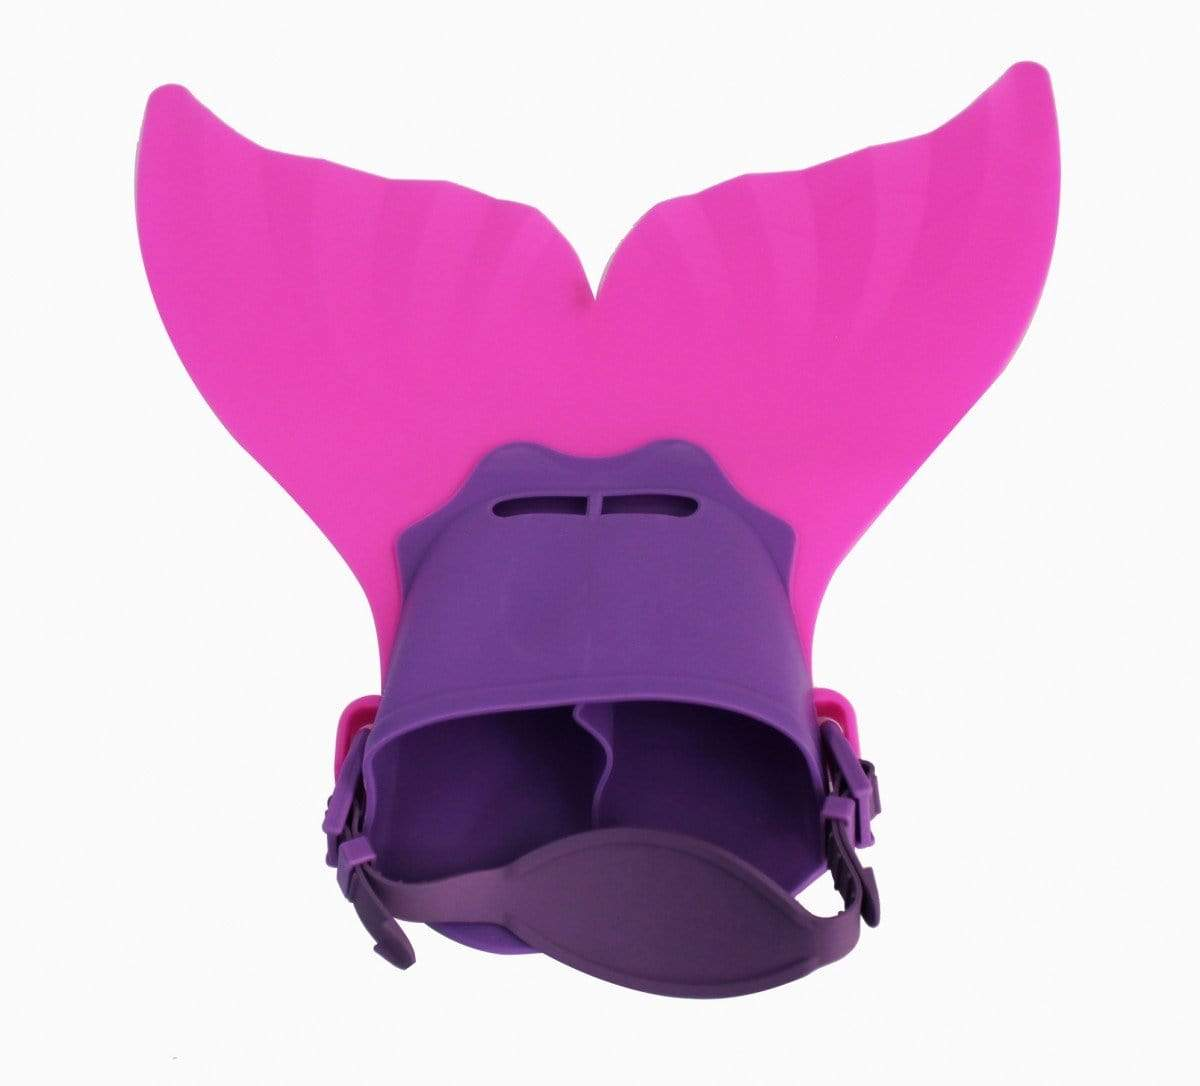 Mermaid Flippers - Small - Pink/Purple Snatcher Online Shopping South Africa